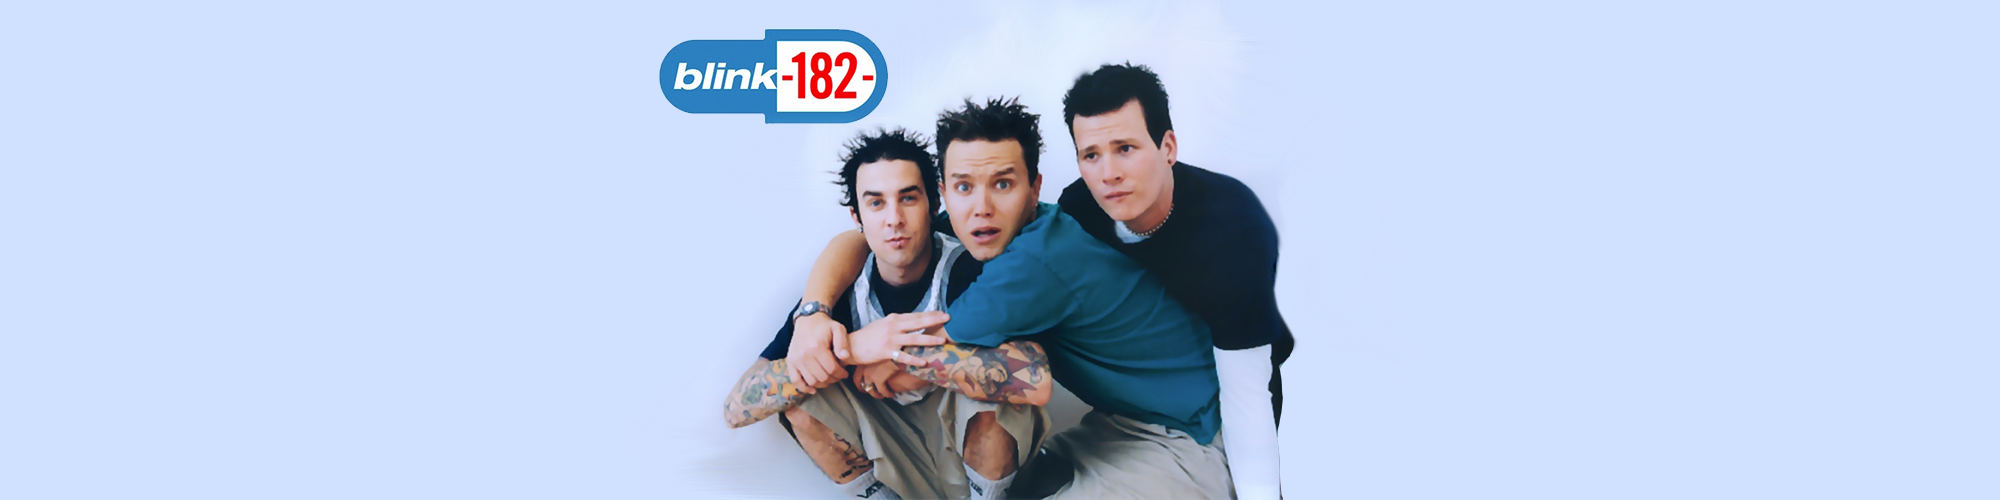 blink-182 Song Similarity